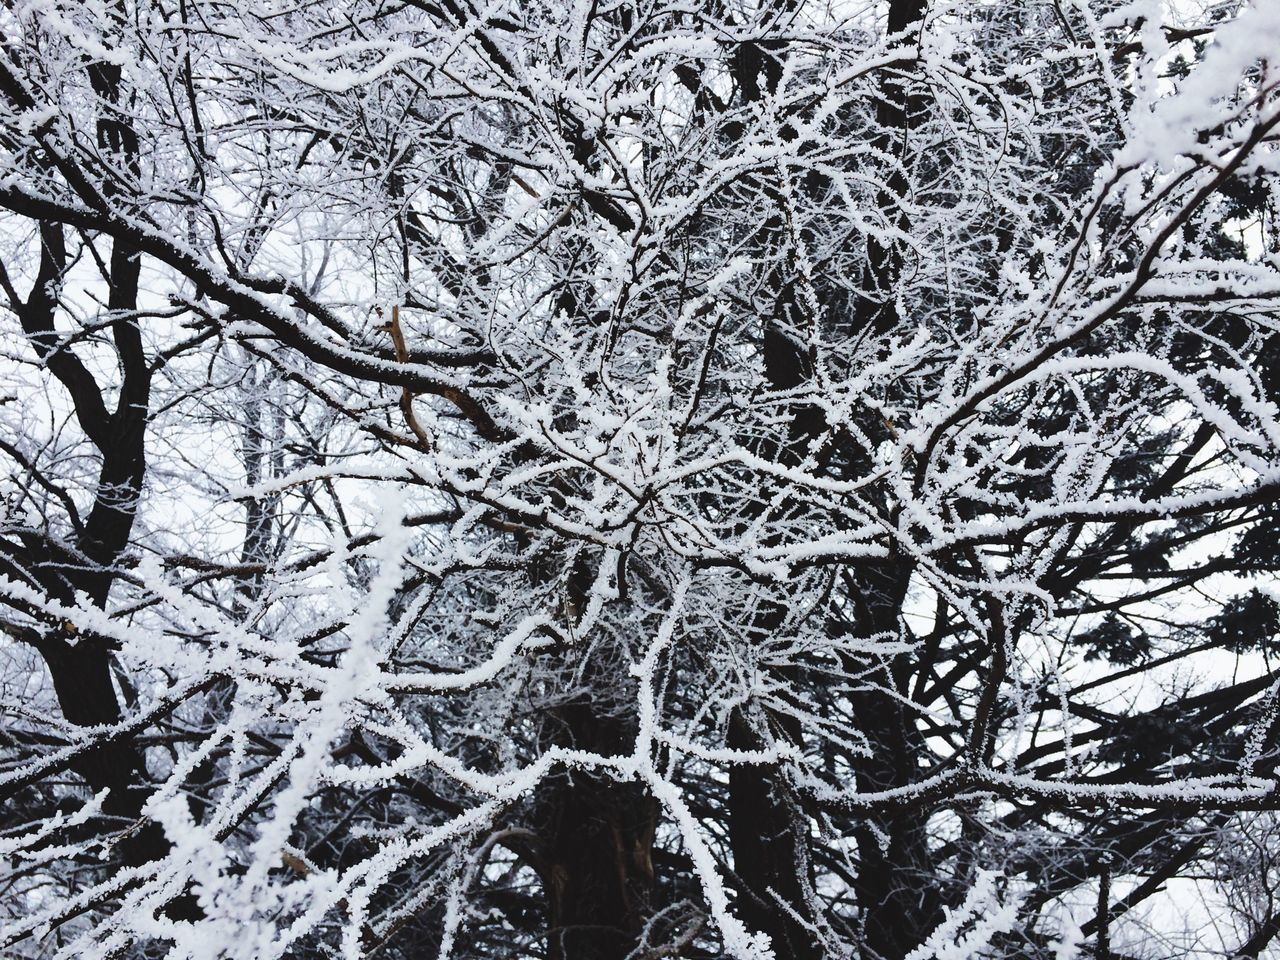 winter, snow, cold temperature, branch, tree, nature, outdoors, no people, beauty in nature, bare tree, day, low angle view, close-up